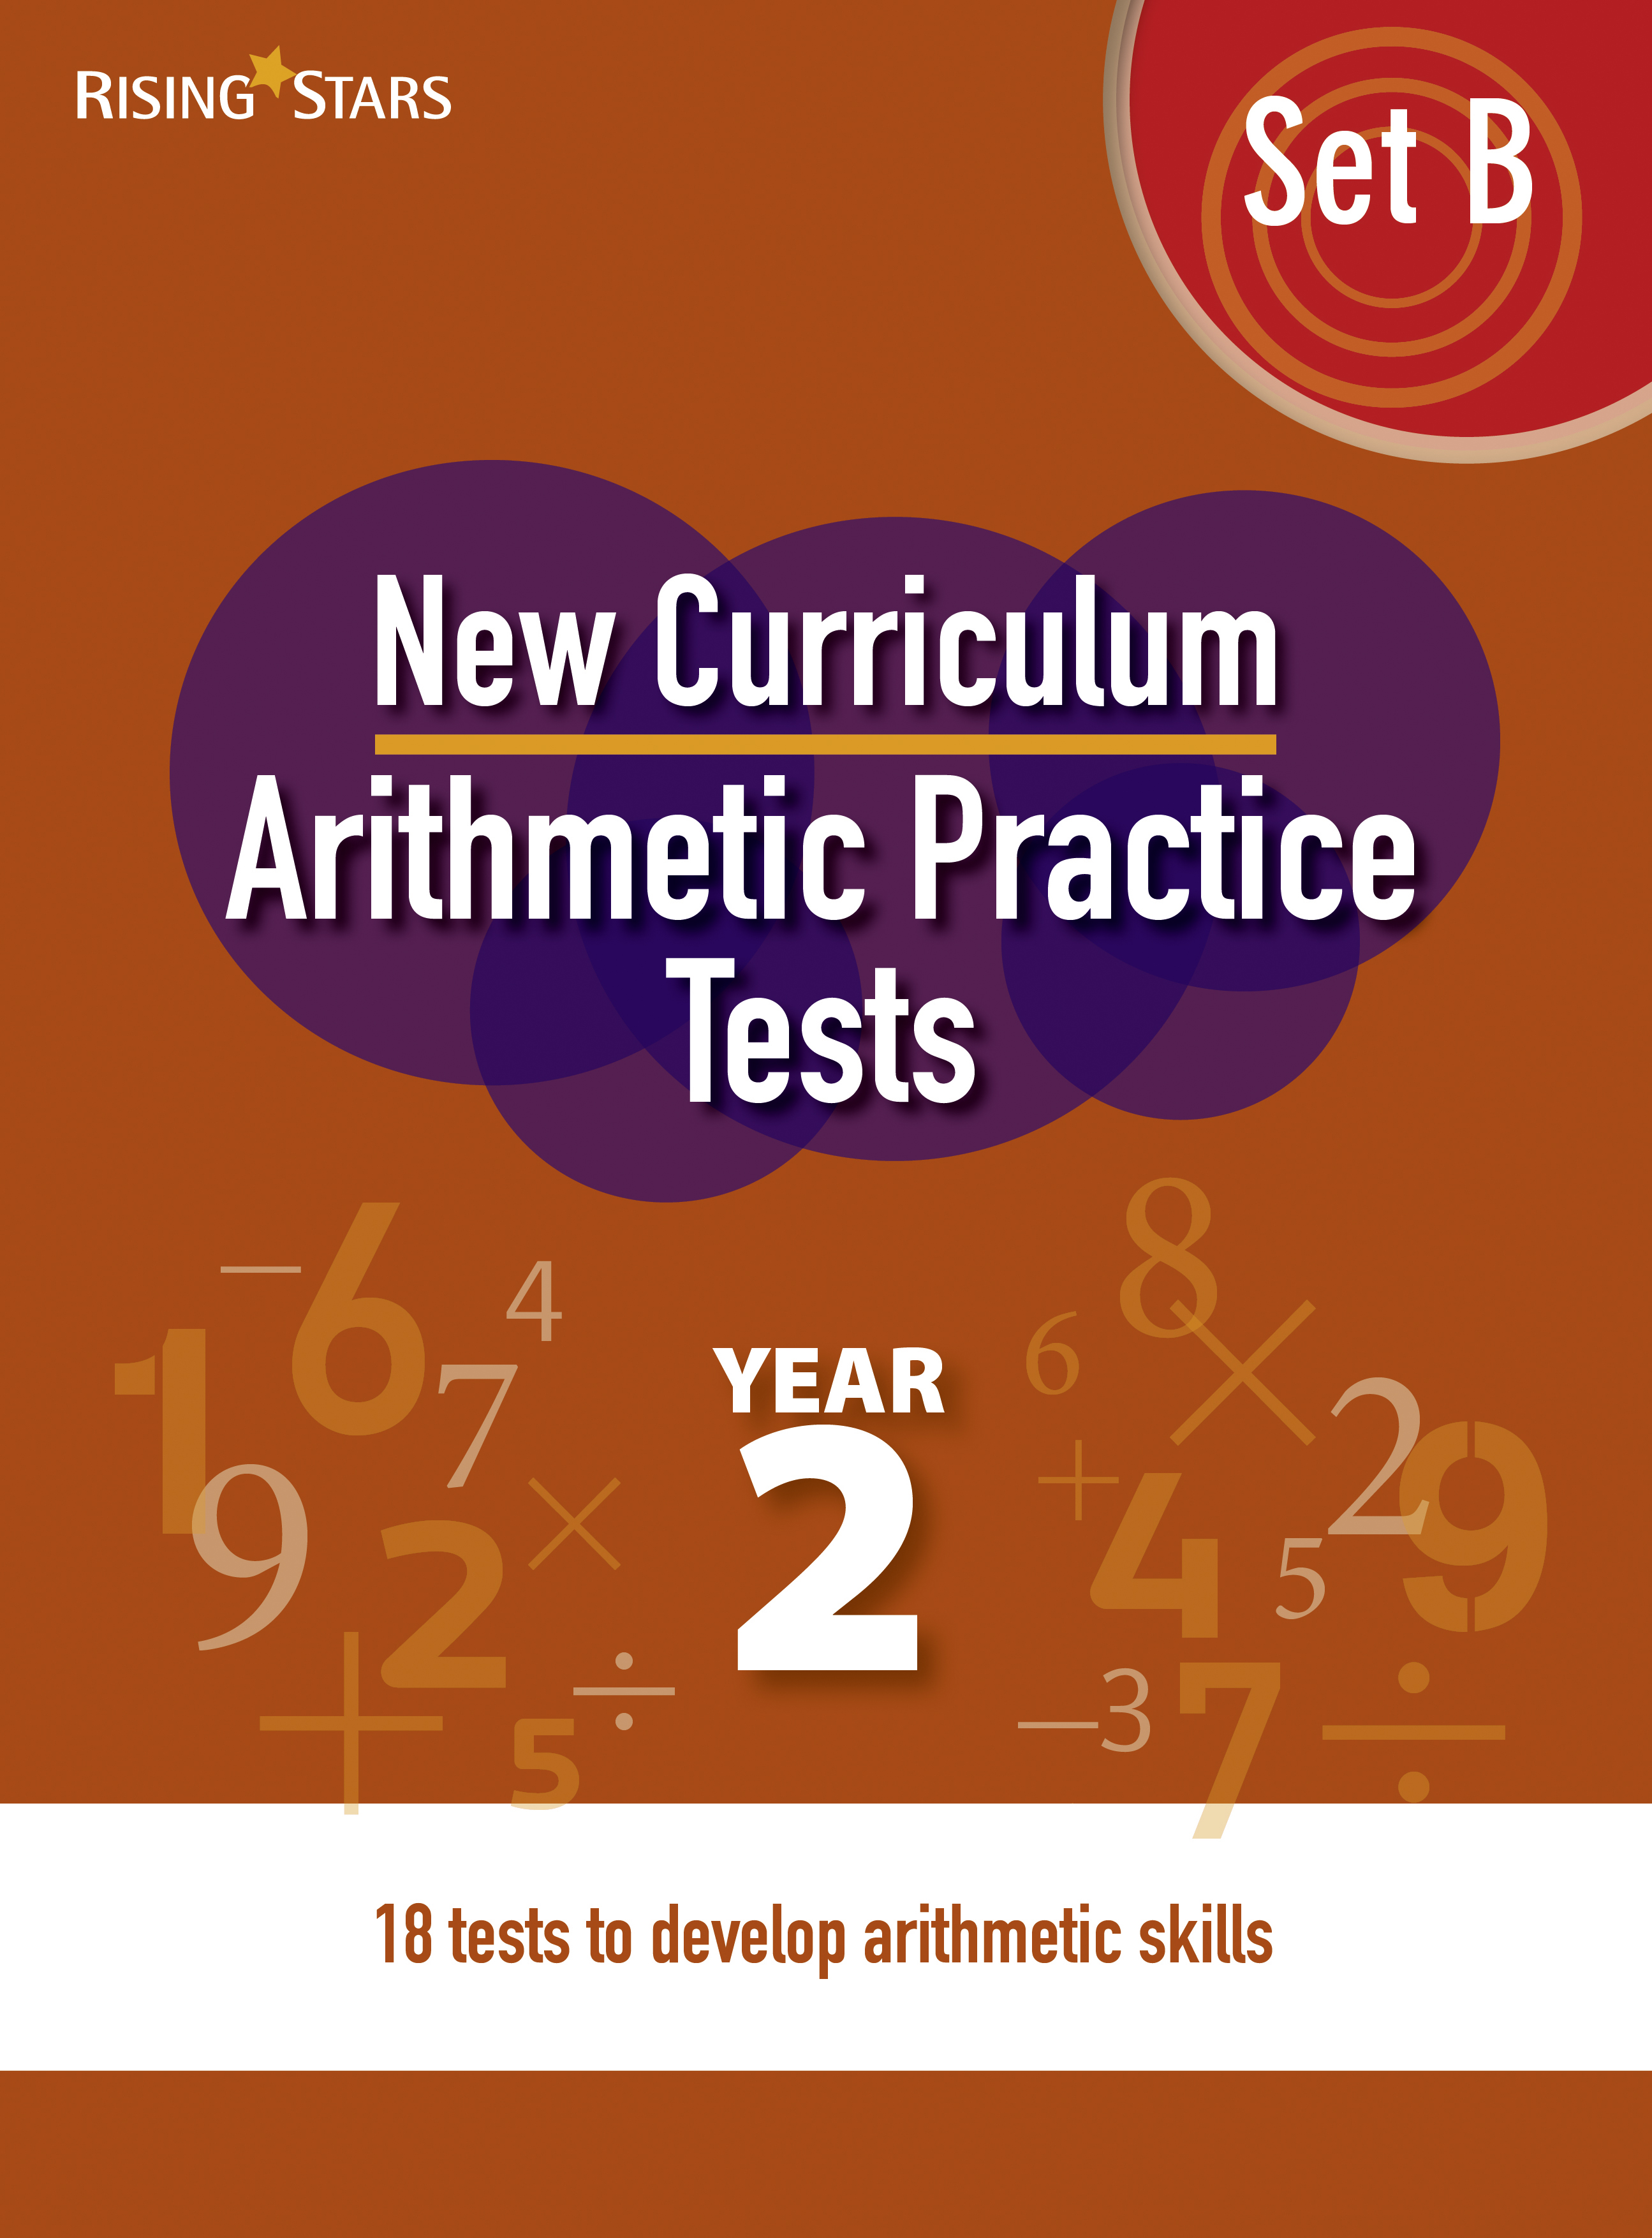 Arithmetic Practice Tests And Questions | Rising Stars